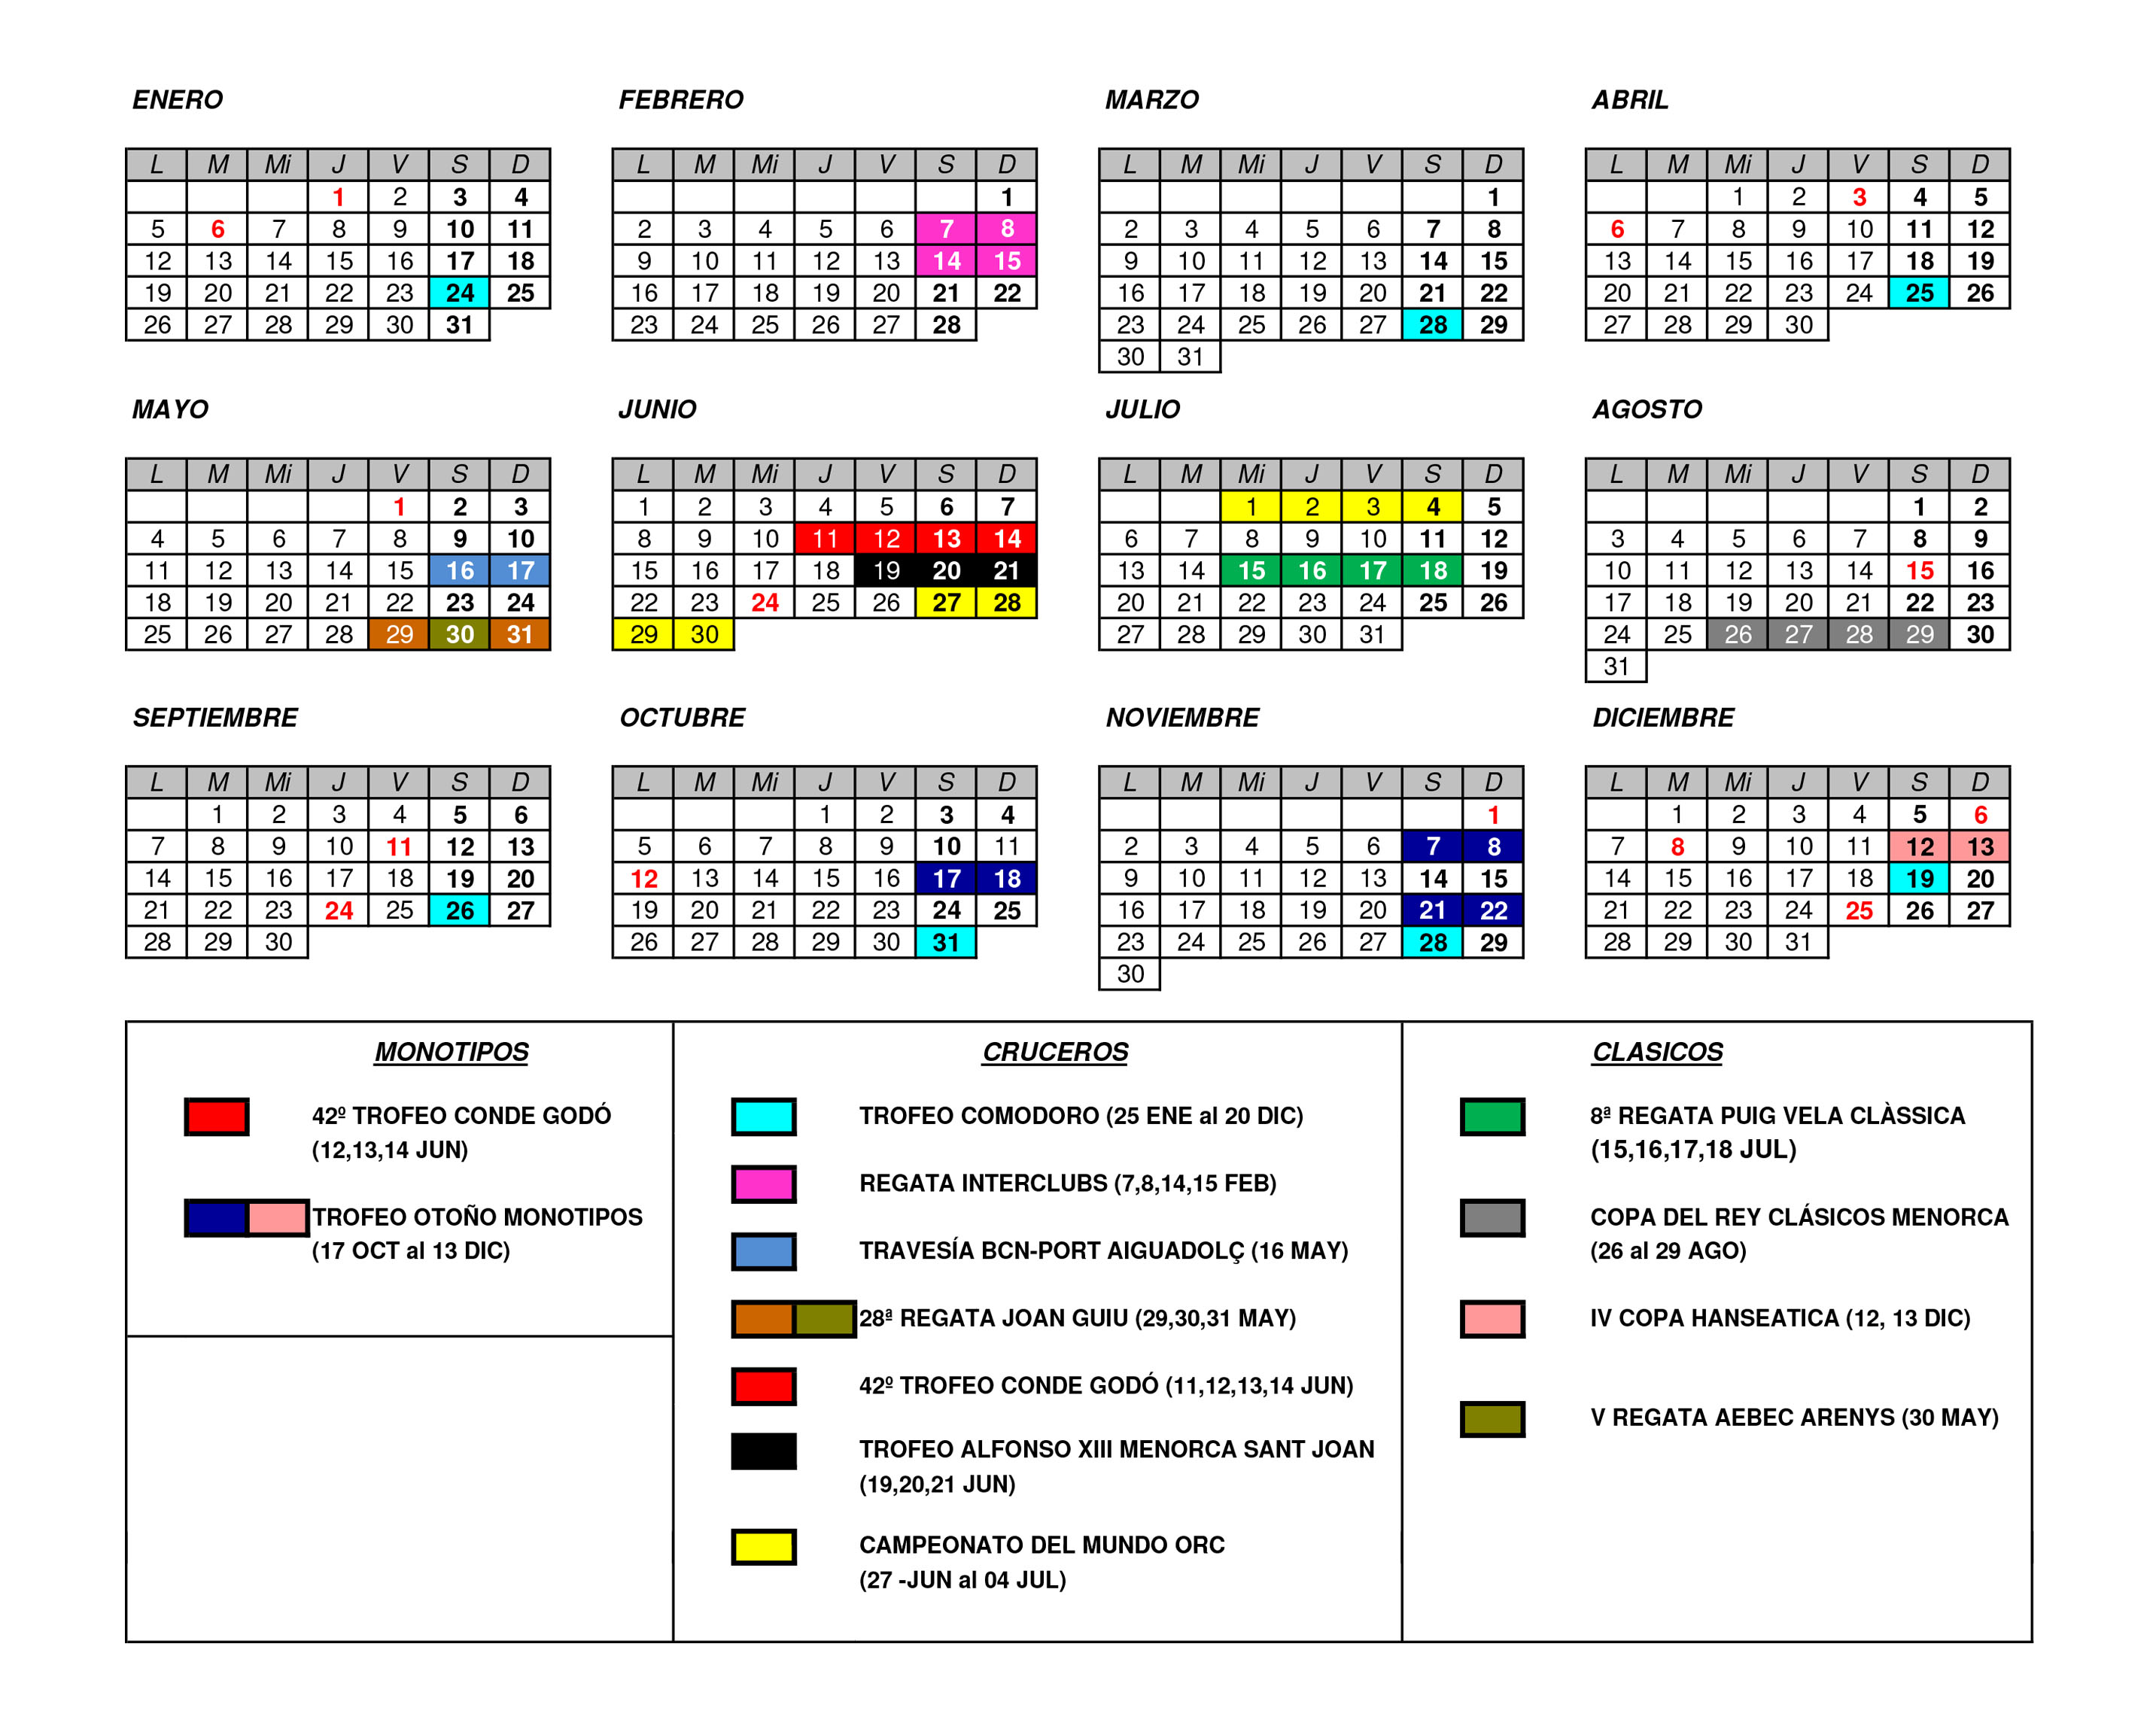 Calendario regatas RCNB 2015 (v3).xls